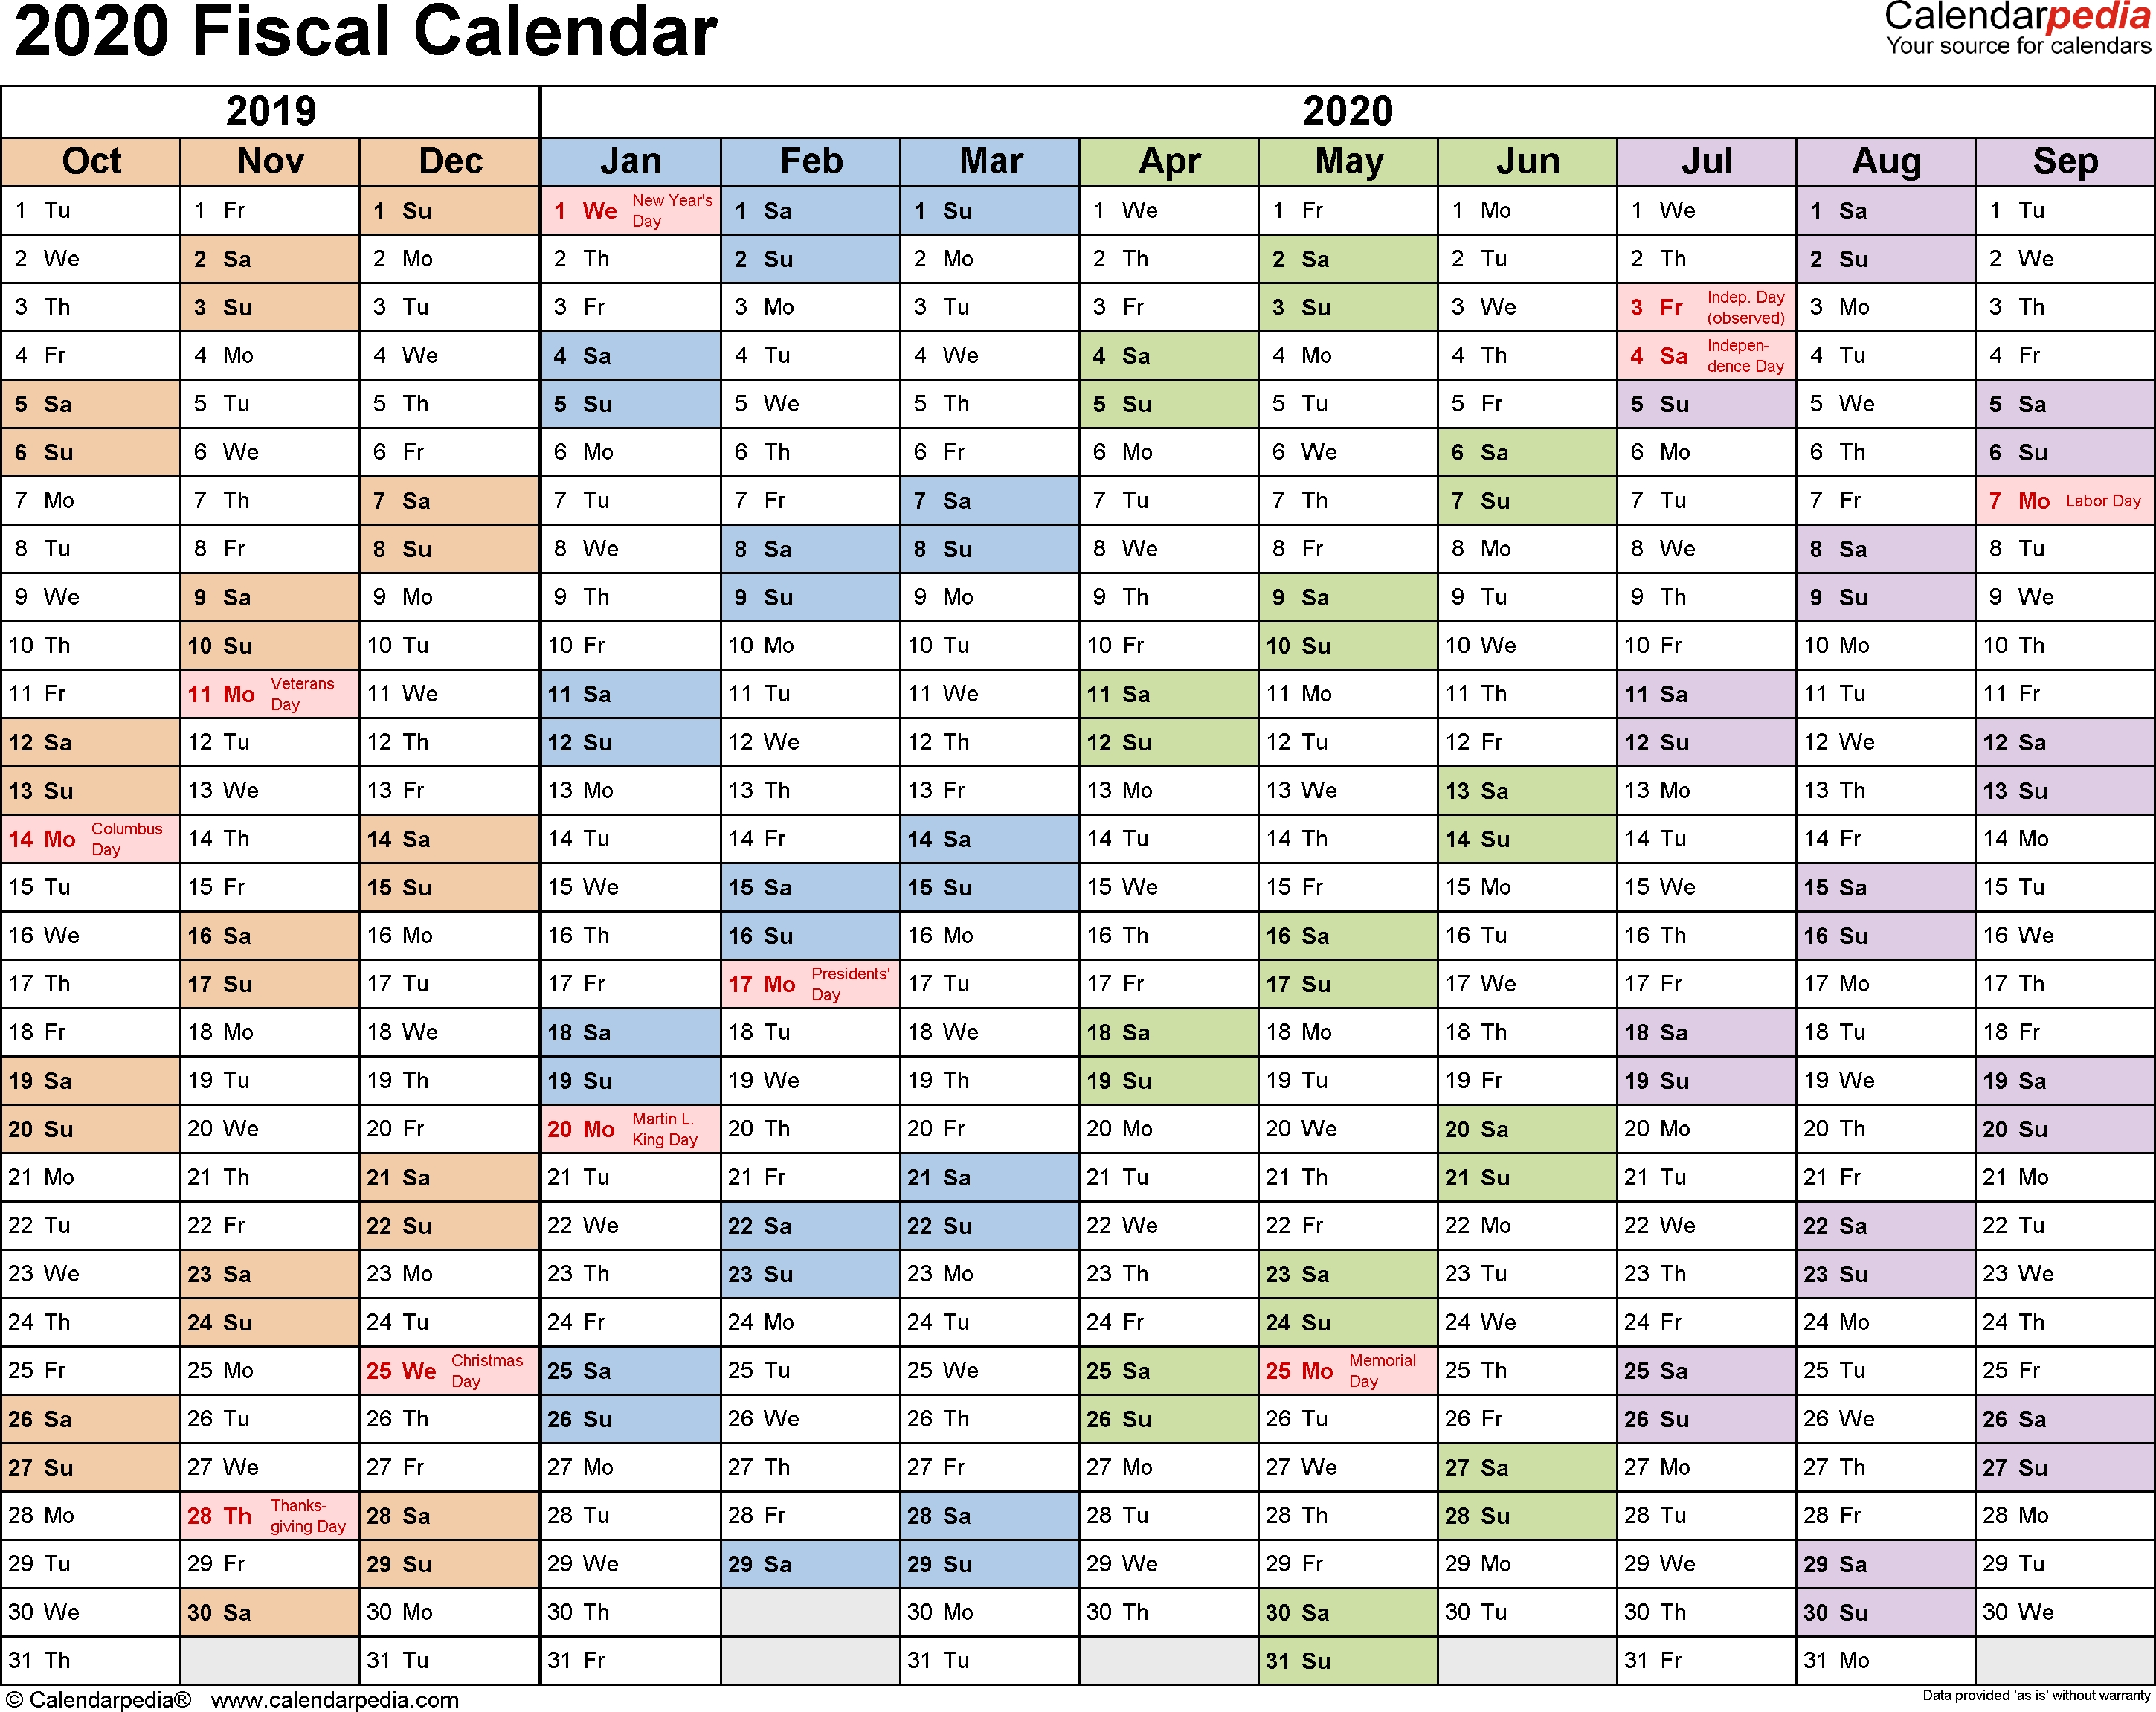 Fiscal Calendars 2020 As Free Printable Word Templates intended for Tax Calendar 2019/2020